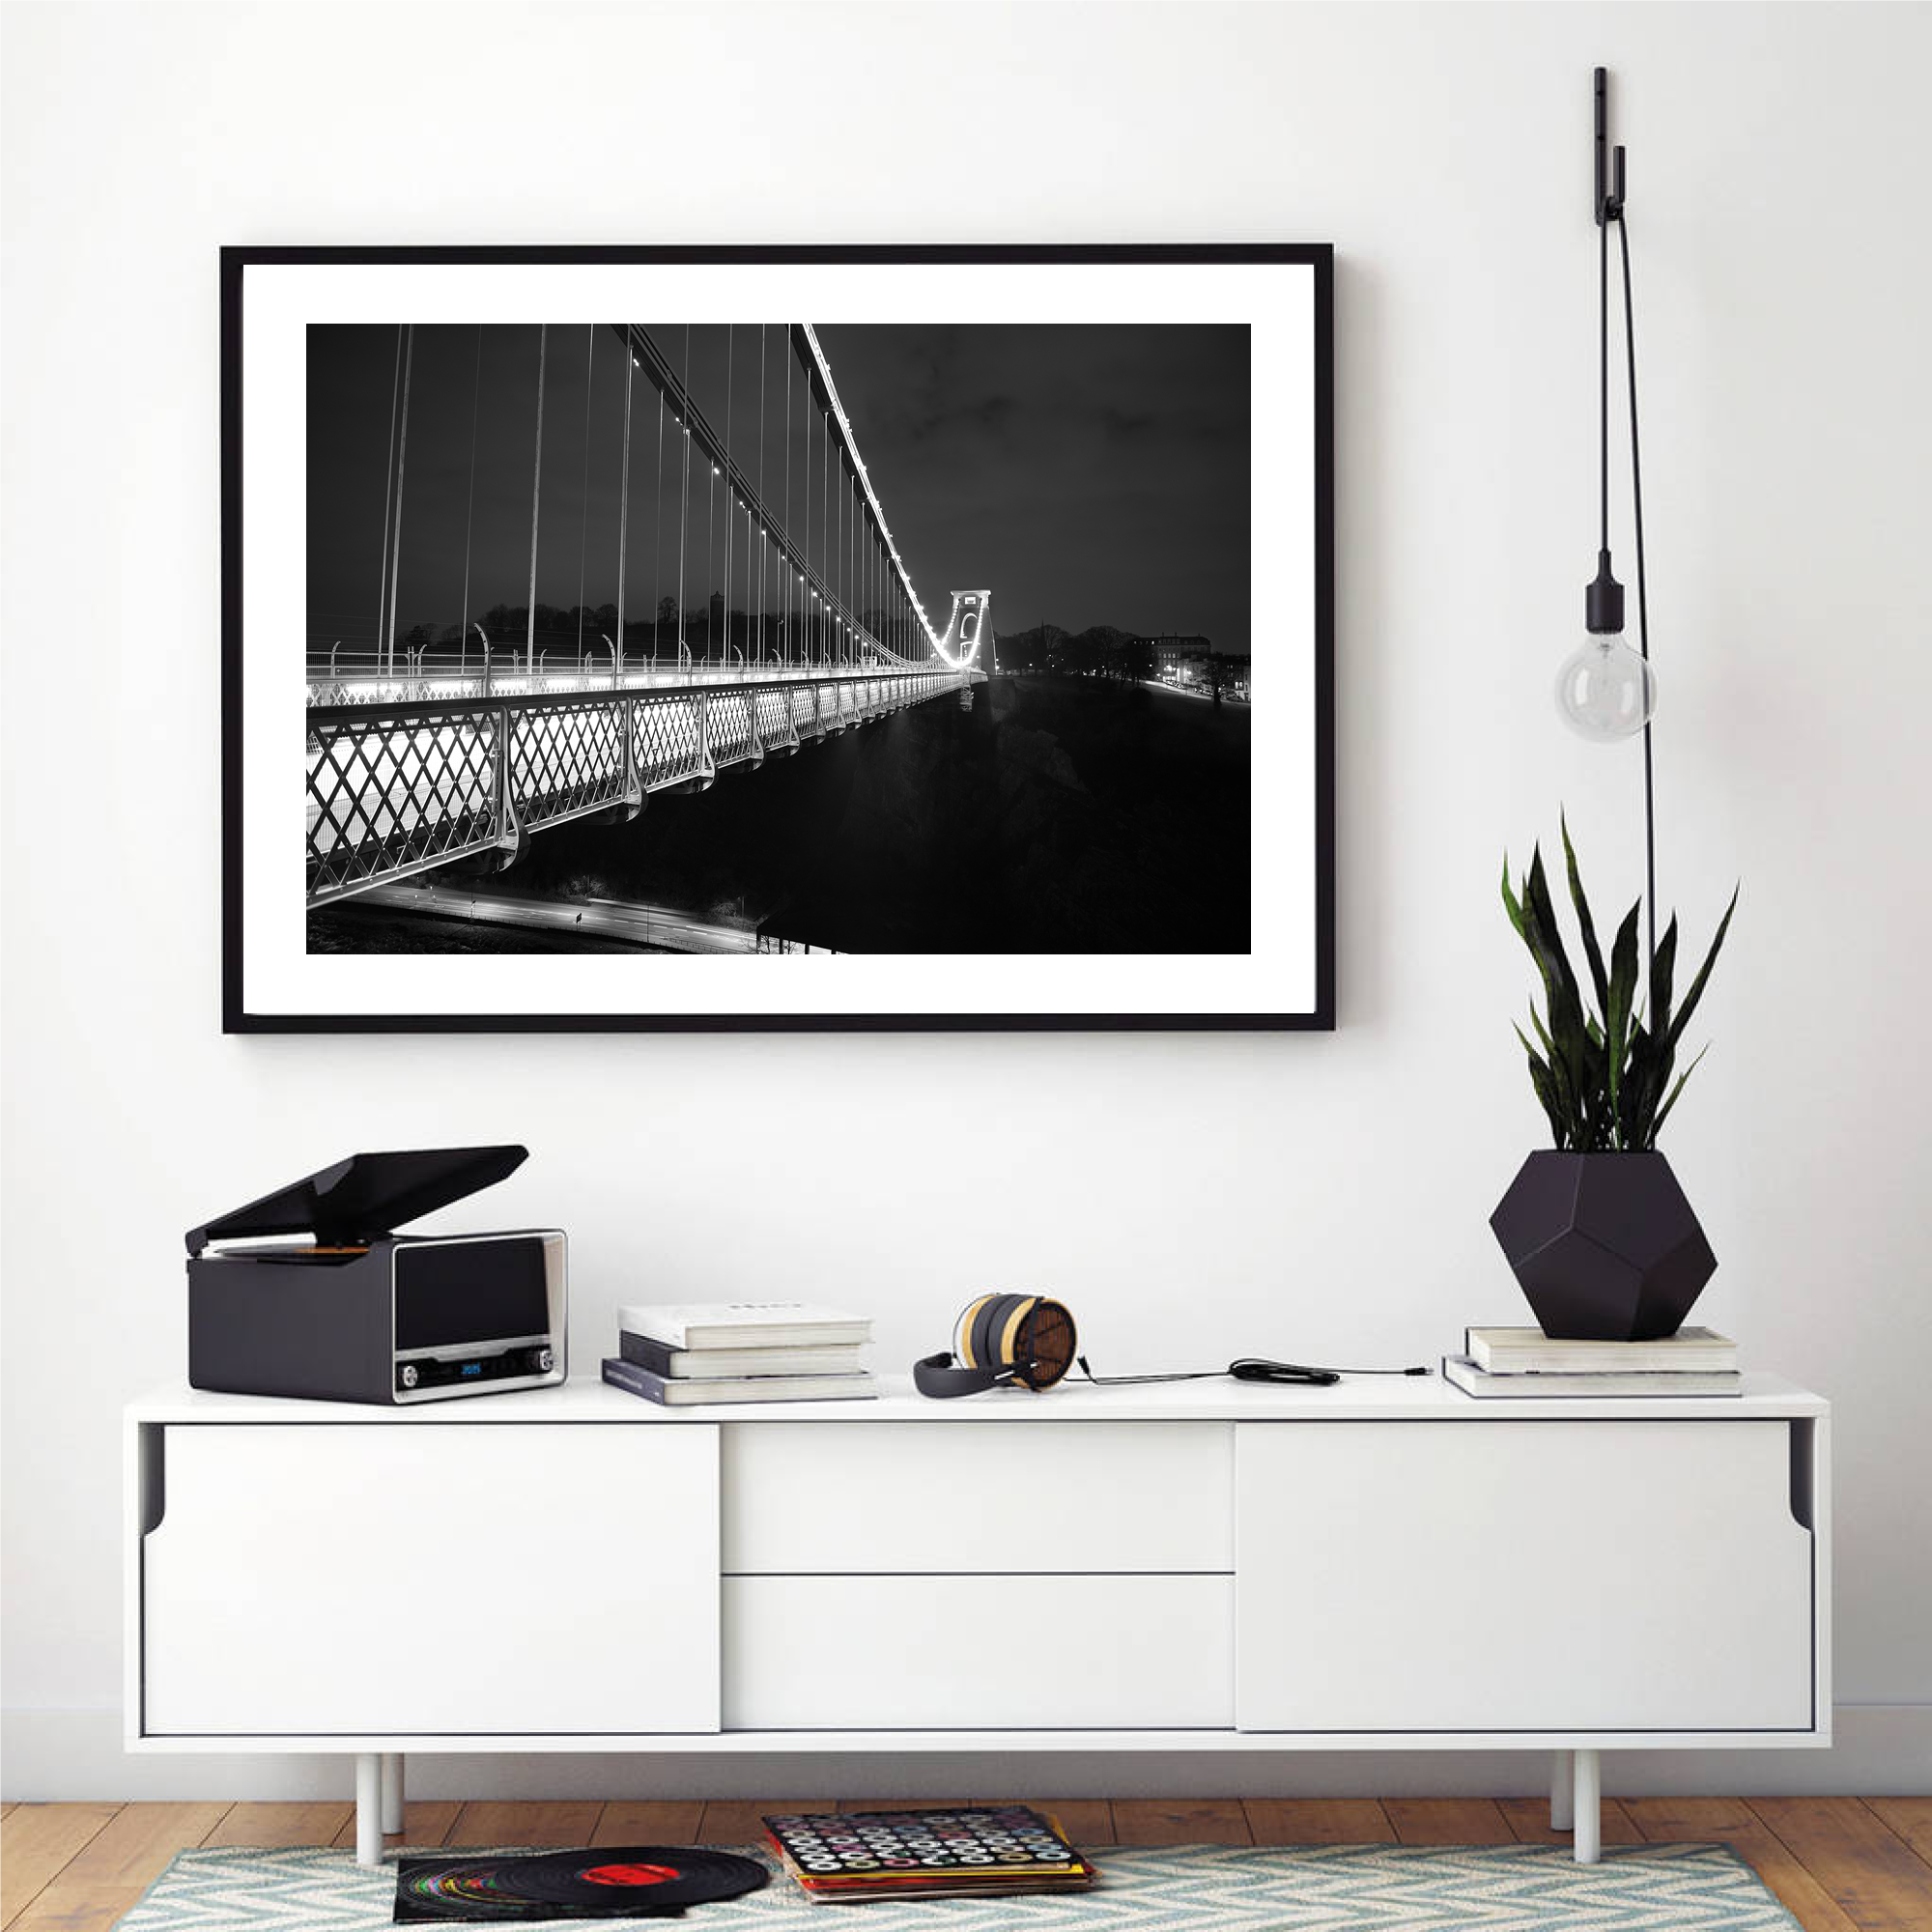 Clifton Suspension Bridge on wall.png